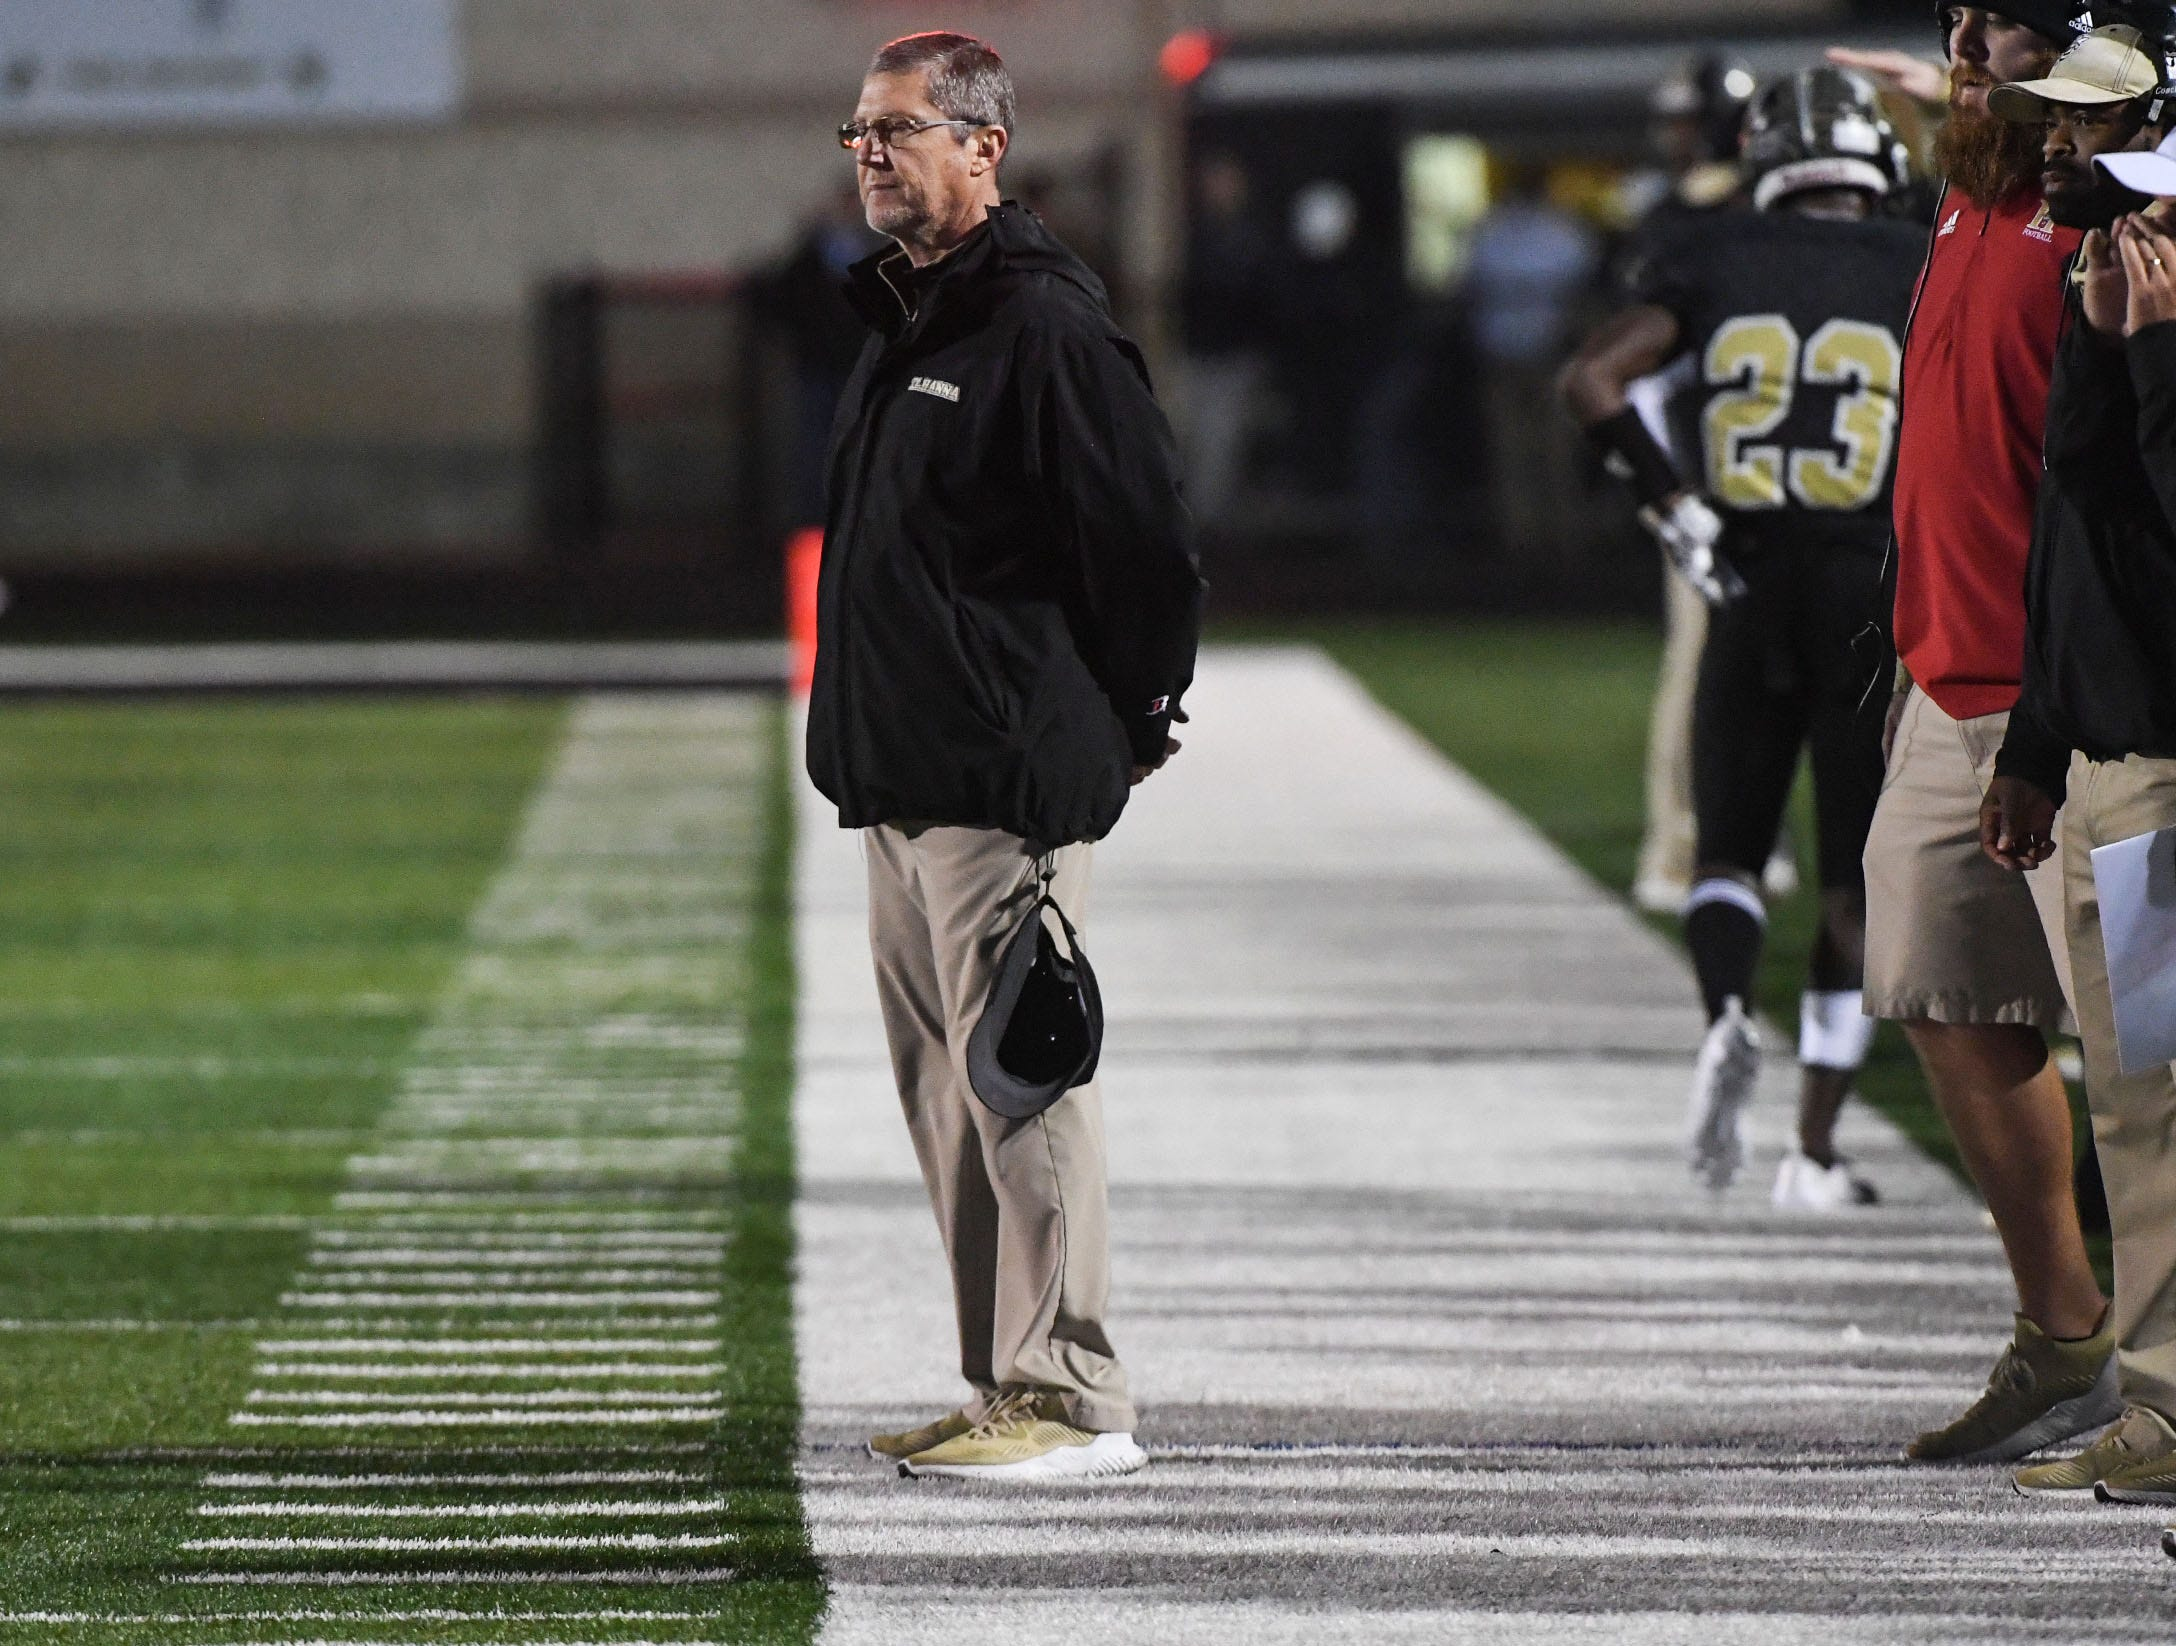 TL Hanna head coach Jeff Herron during the fourth quarter of the Class AAAAA state playoffs at TL Hanna High School in Anderson on Friday, November 30, 2018.